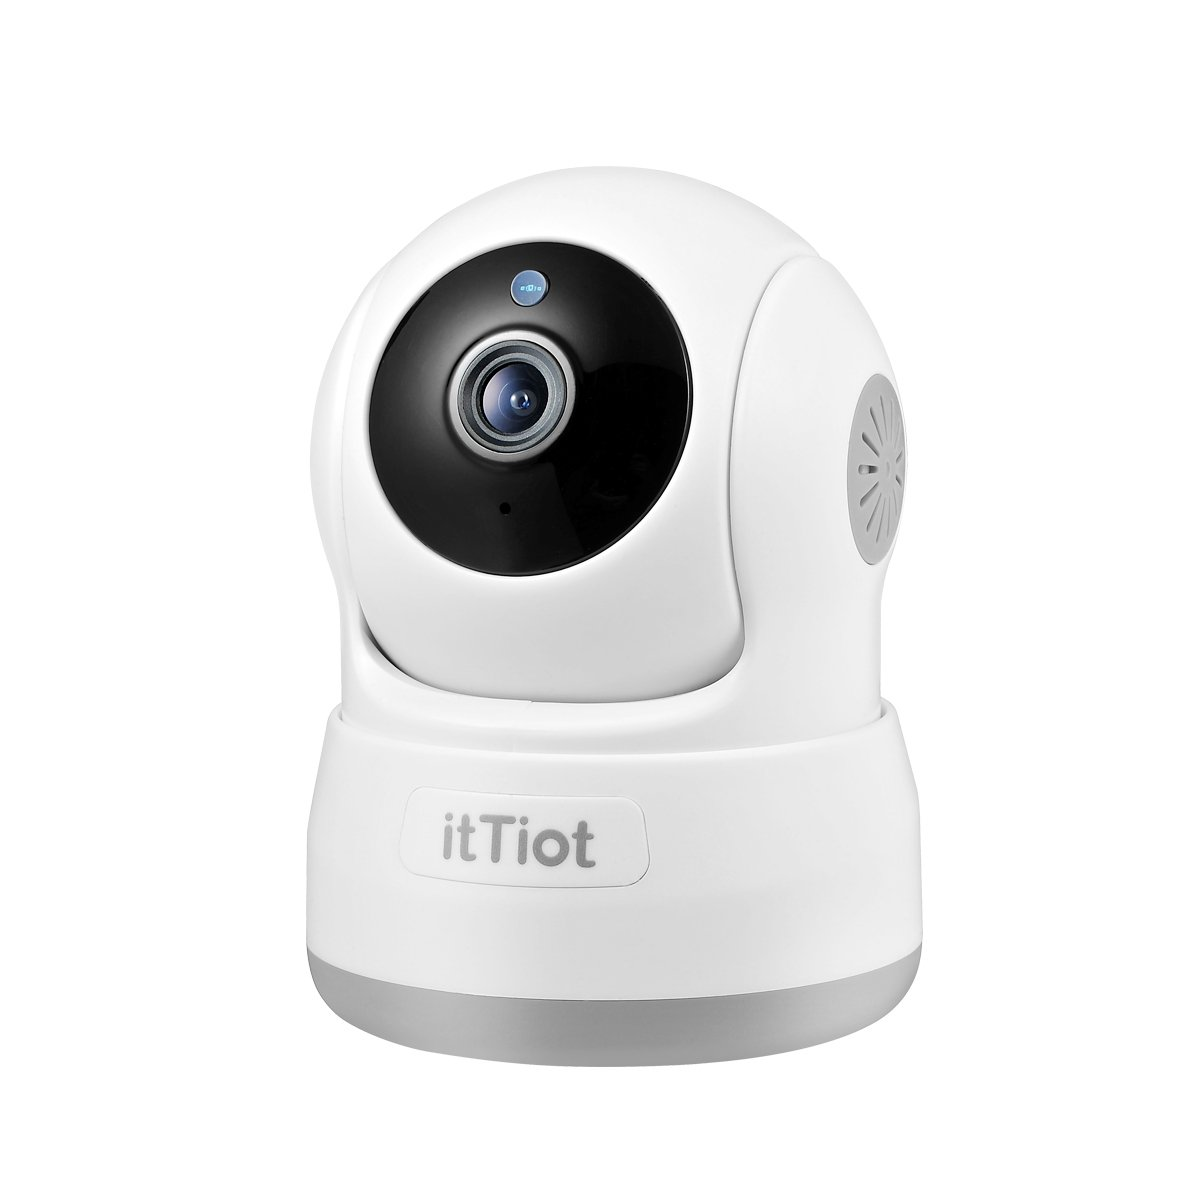 Wireless Security Camera, itTiot 720P HD Indoor WiFi Home Surveillance IP  Camera for Baby Pet Nanny Monitor with Pan/Tilt, Two Way Audio, Night  Vision